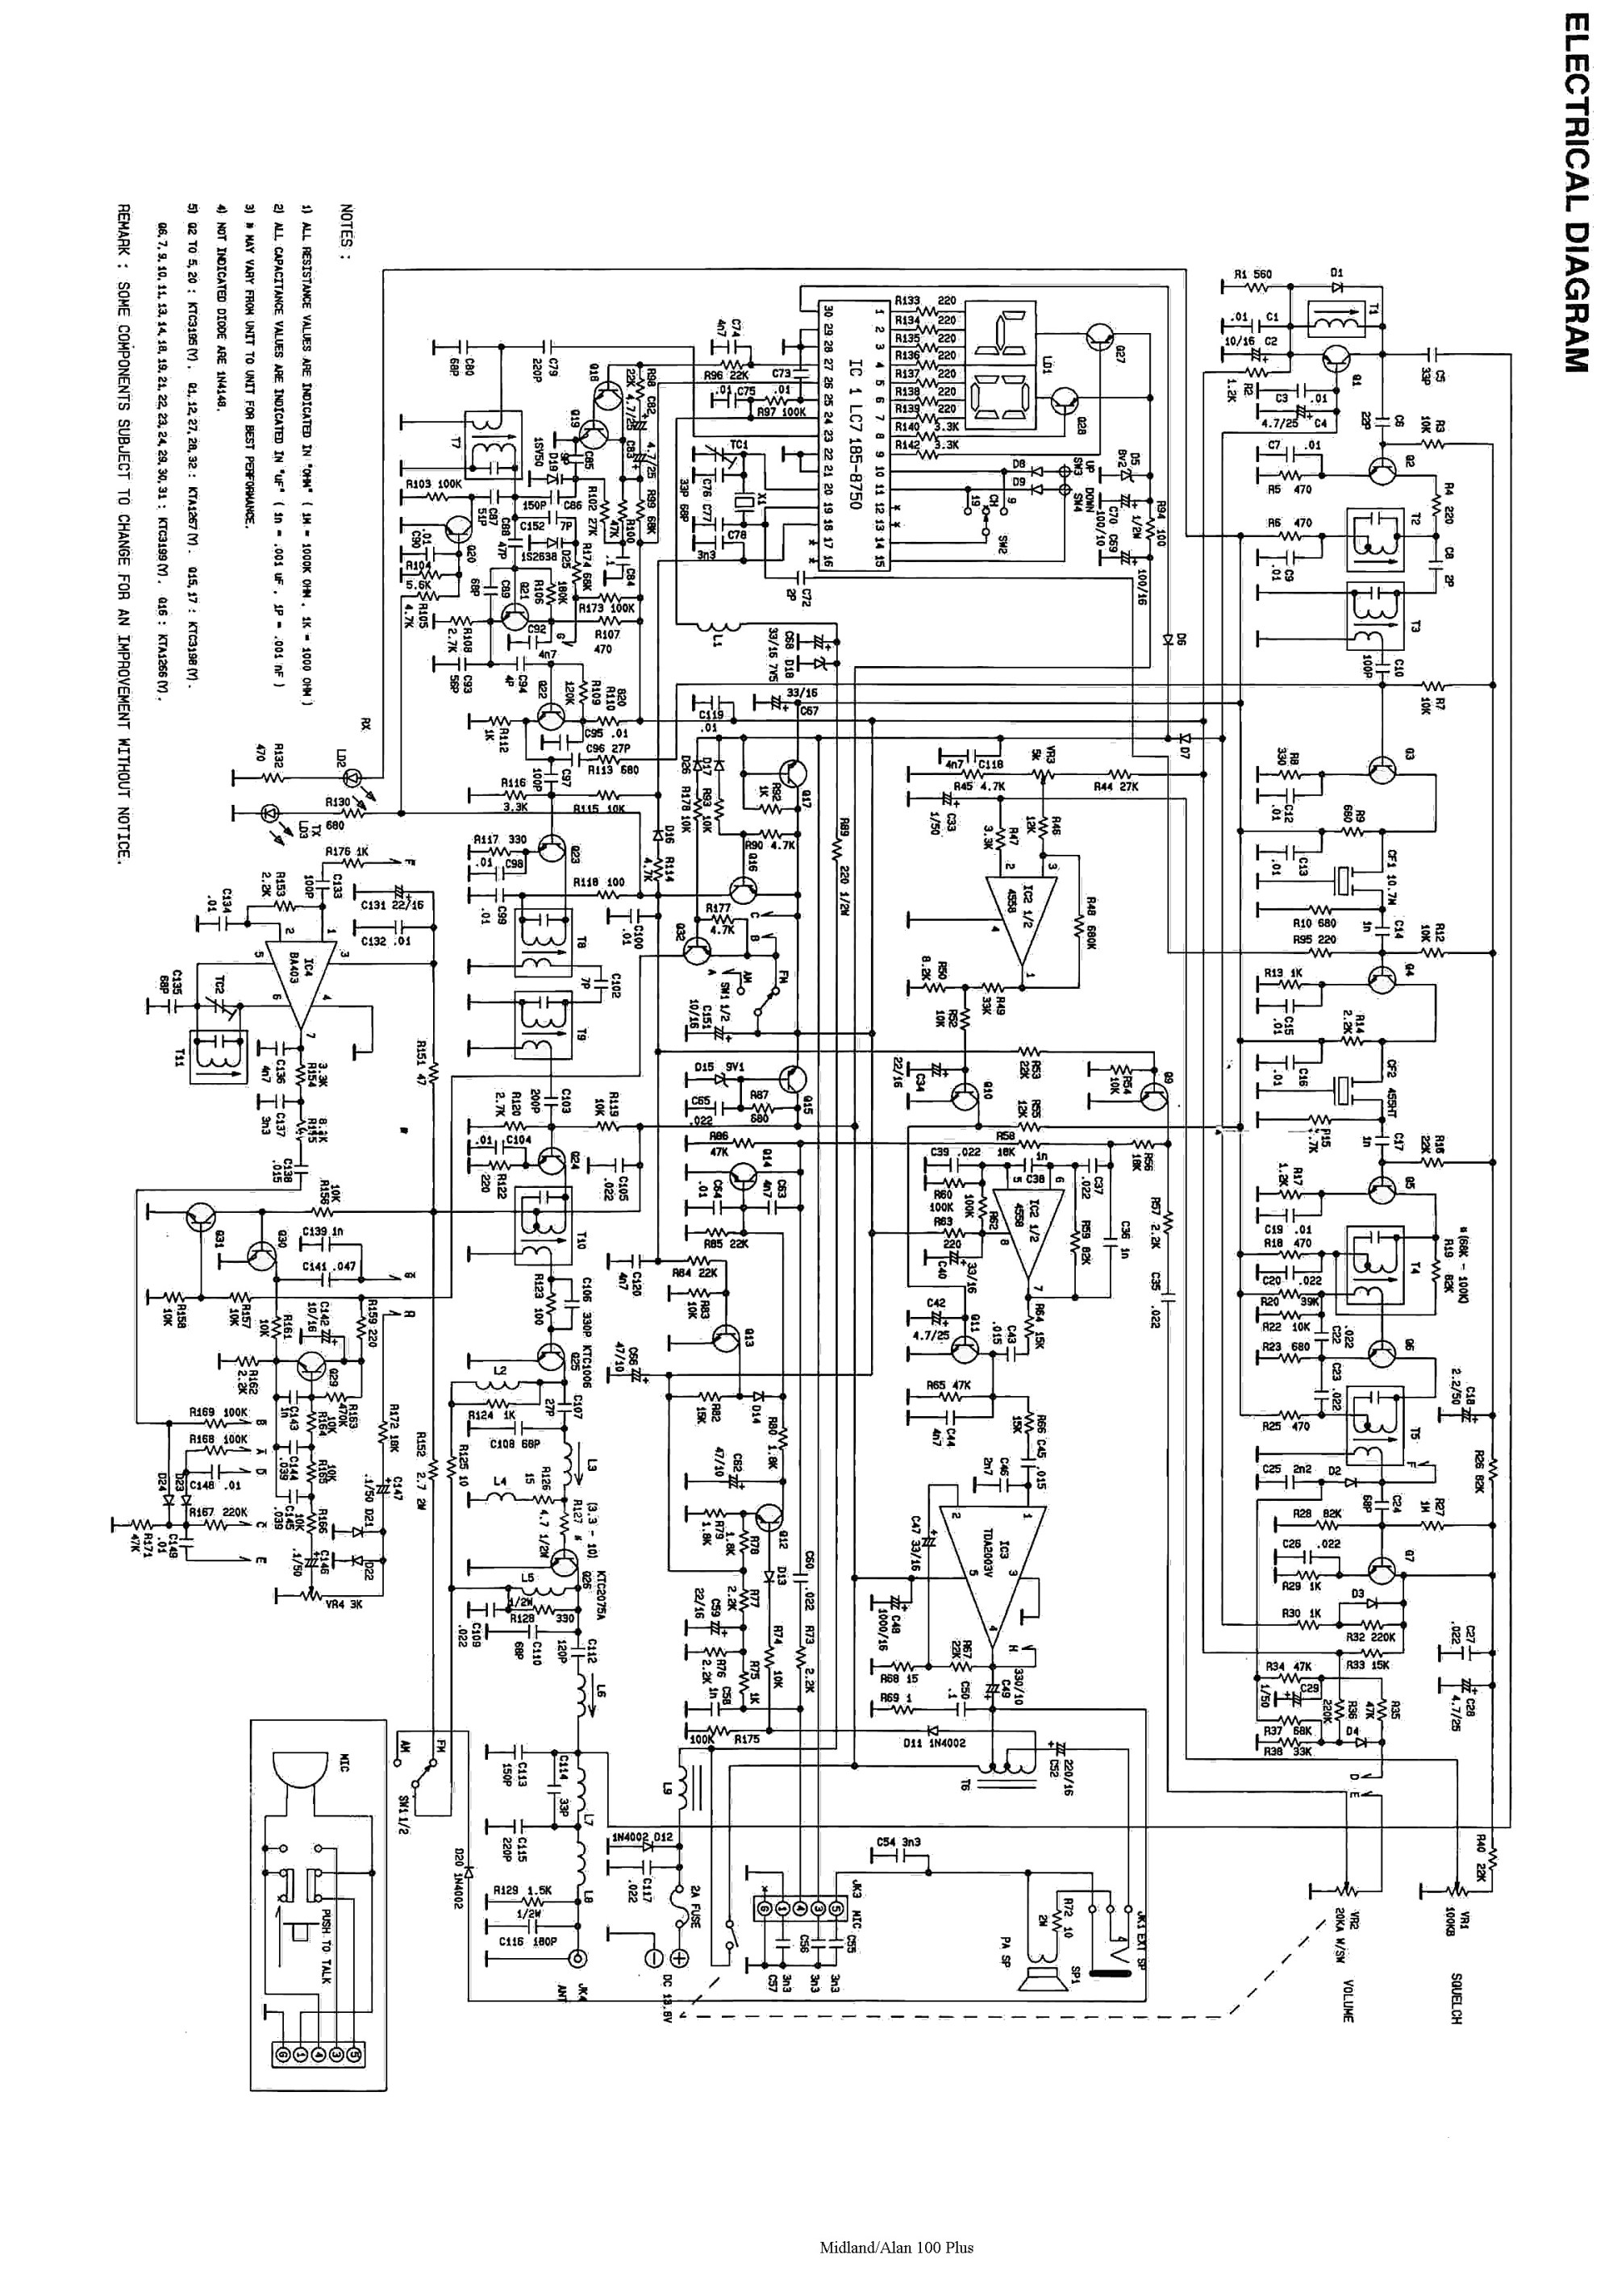 hight resolution of rigpix database schematics manuals n stuff international 4700 wiring diagram 2001 4700 international engine diagram